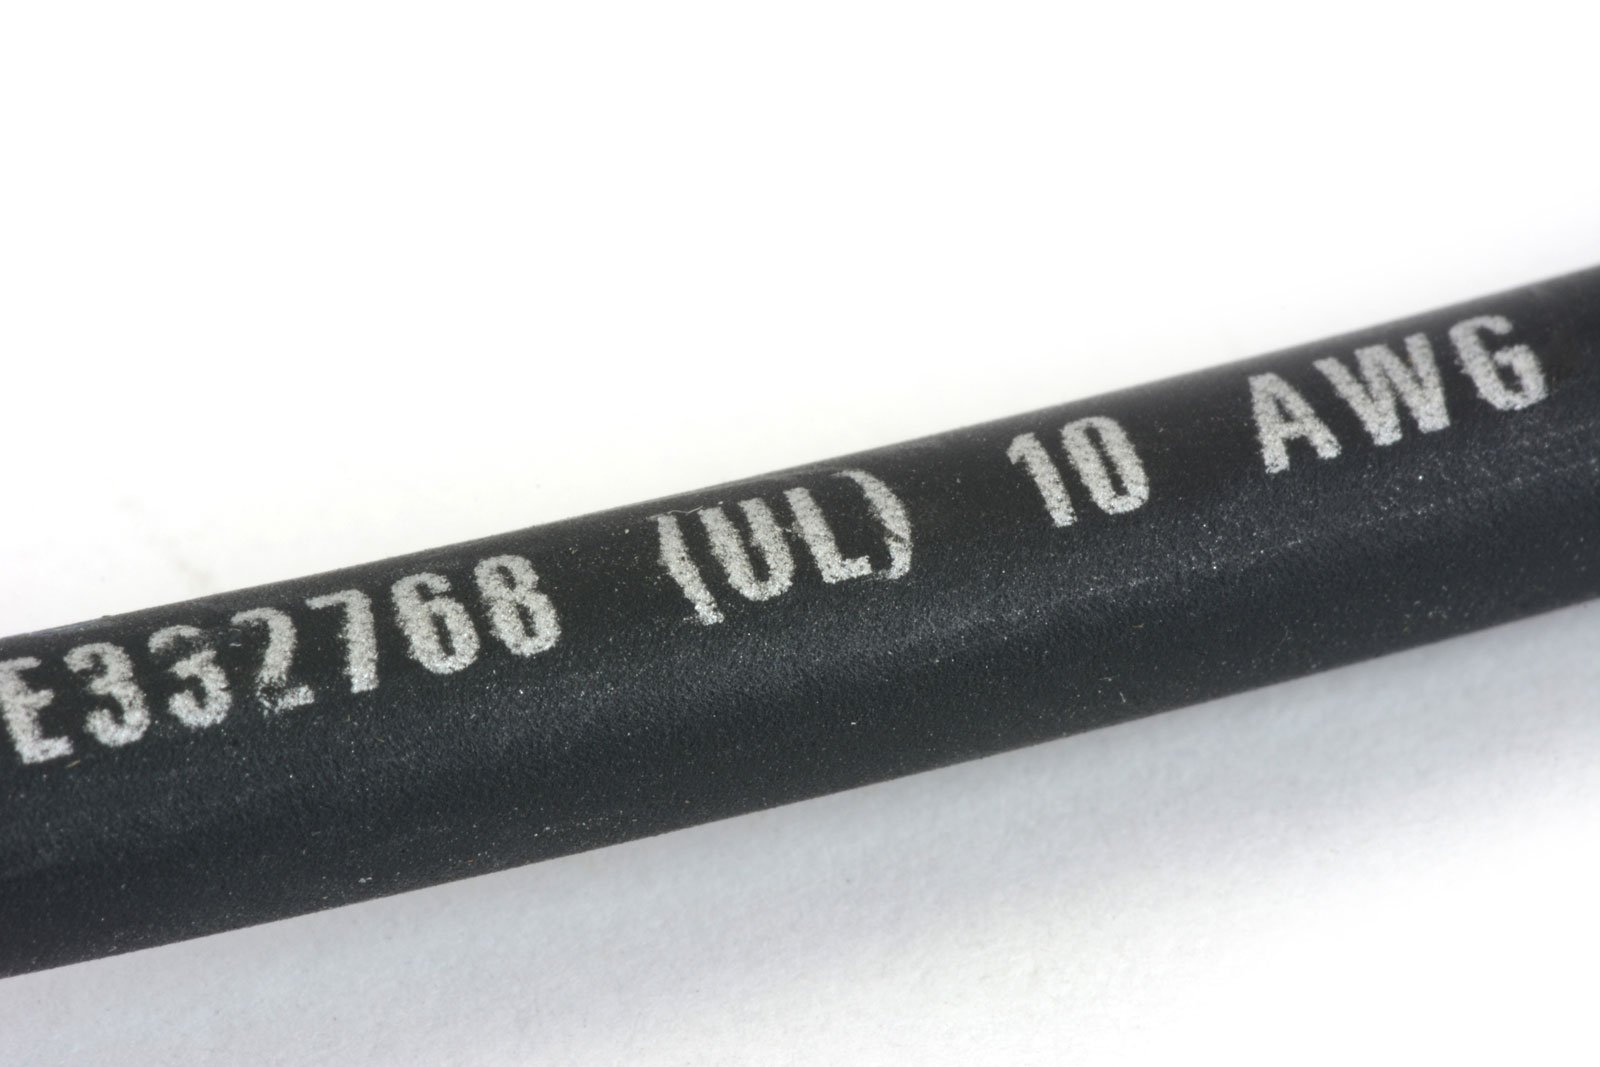 Temco 10 AWG Solar Panel Wire 250' Power Cable Black UL 4703 Copper Made in USA PV Gauge by Temco (Image #3)